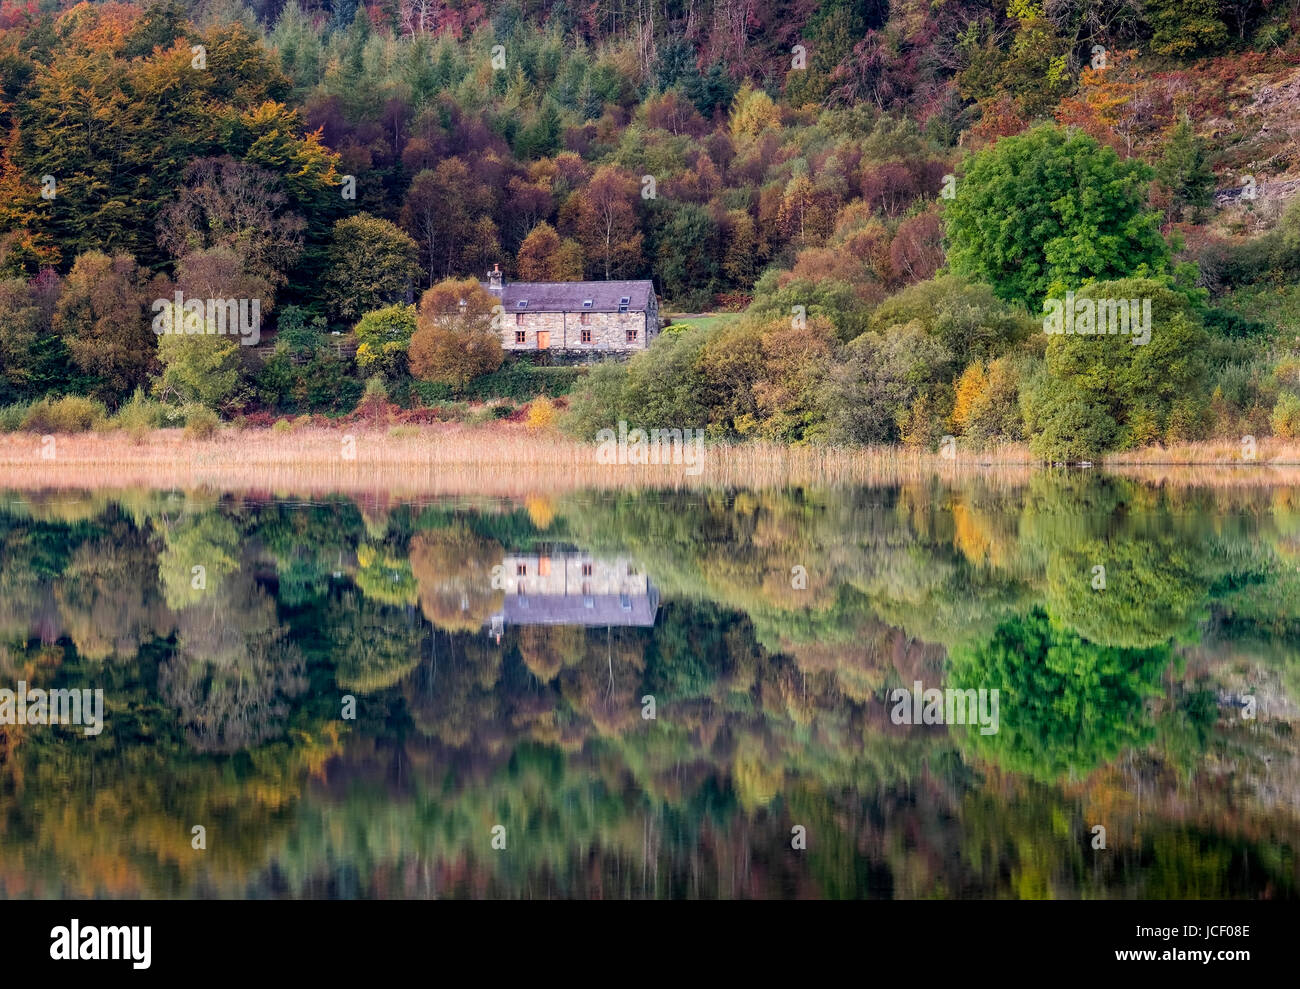 Perfect Reflections in Llyn Geirionydd, Near Trefriw, Conwy County Borough, Snowdonia National Park, North Wales, - Stock Image